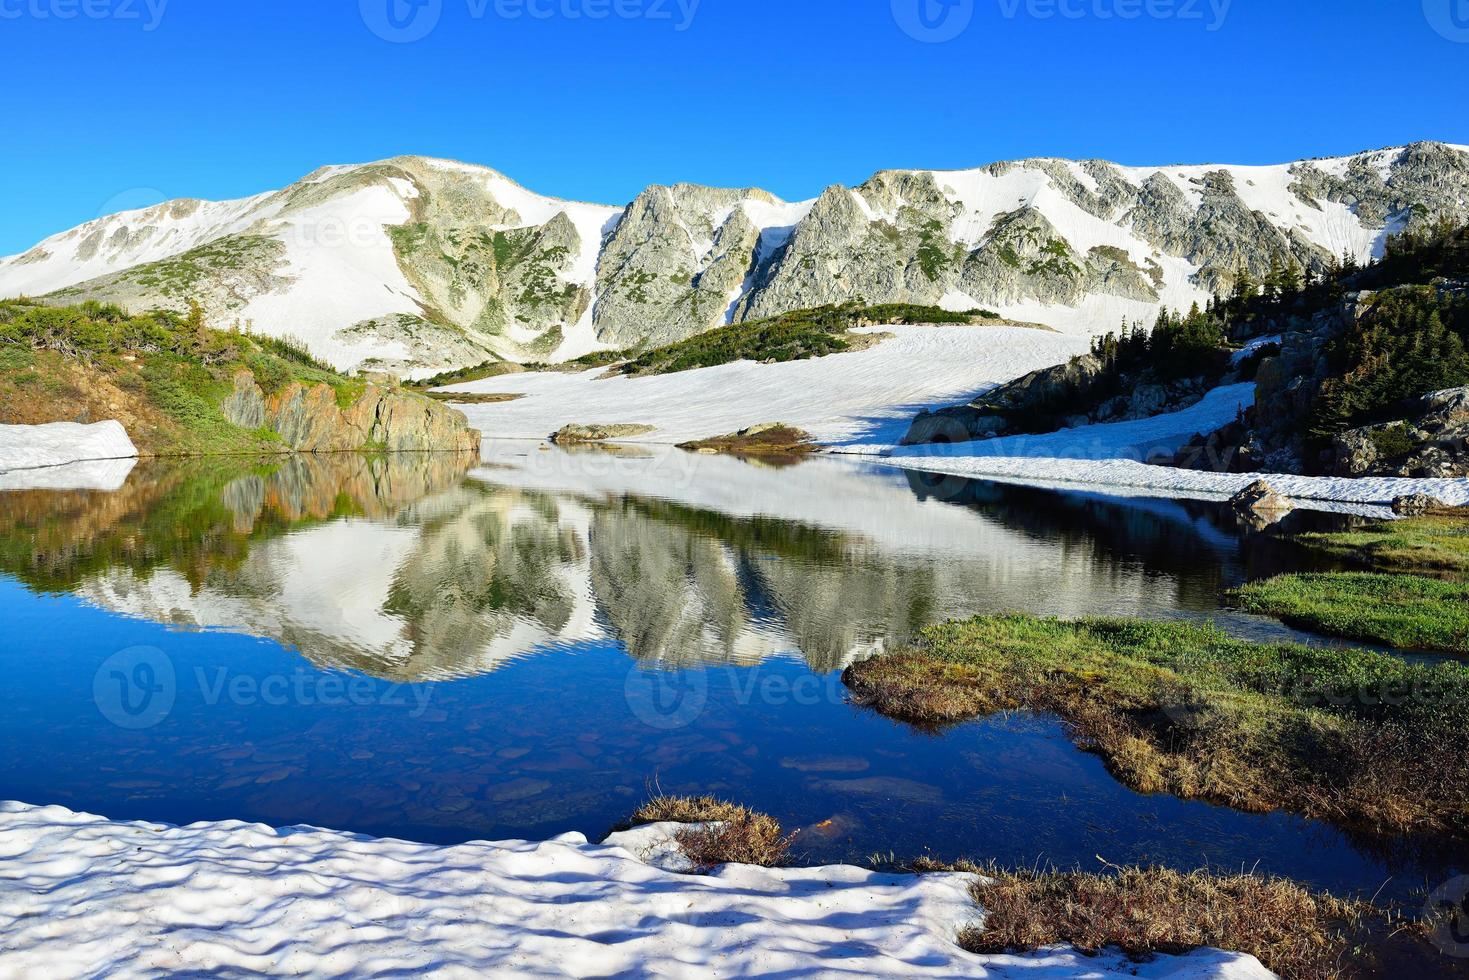 Snowy Range Mountains and alpine lake with reflection photo